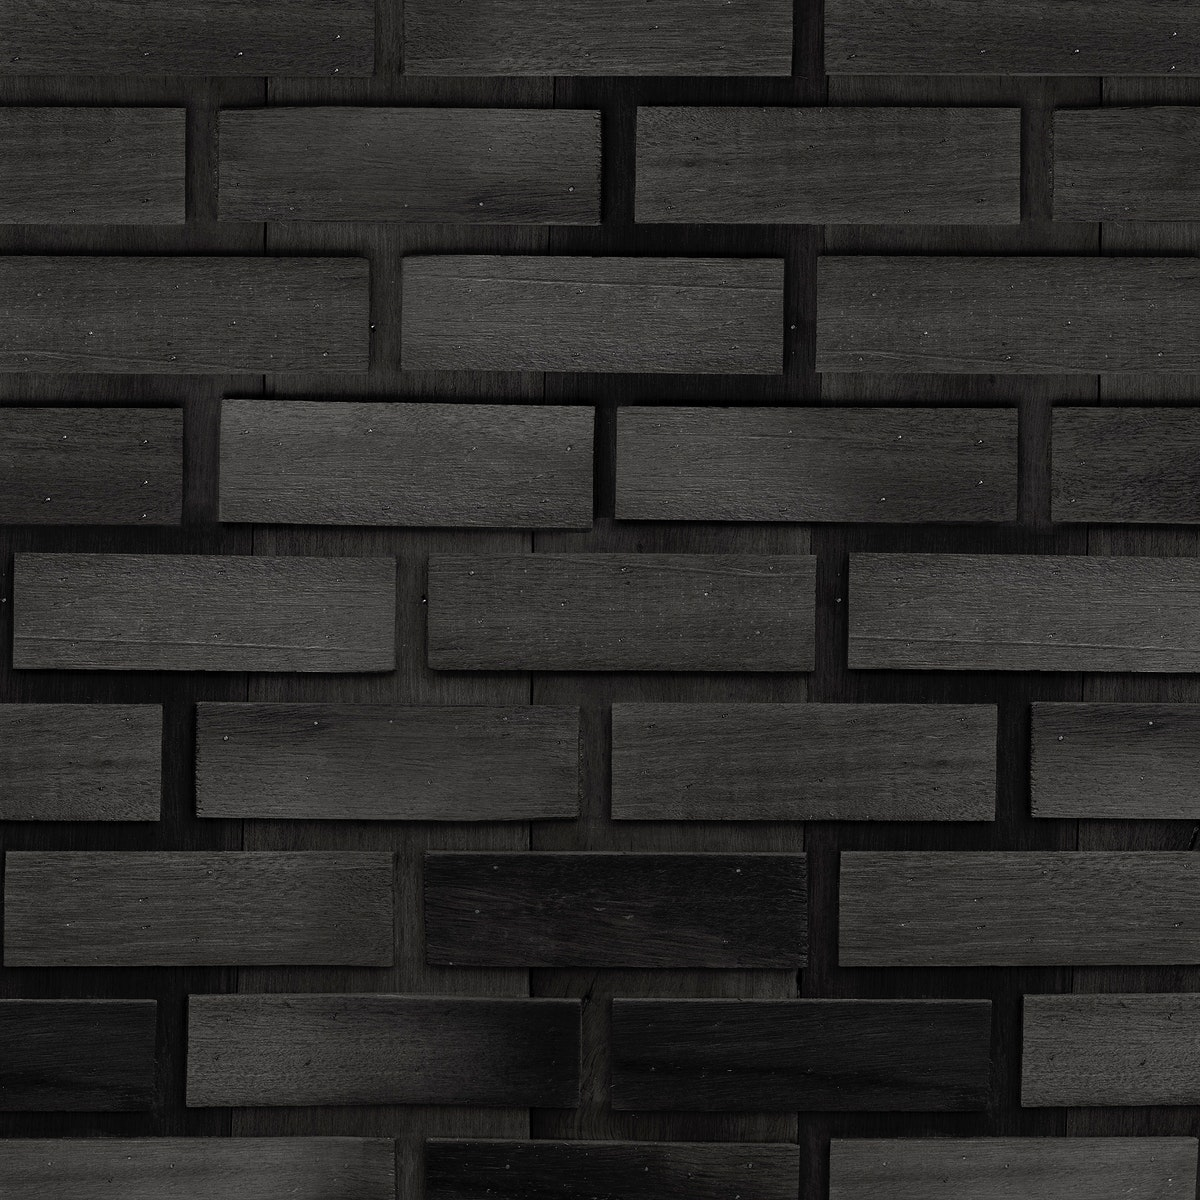 Gray concrete brick wall patterned background